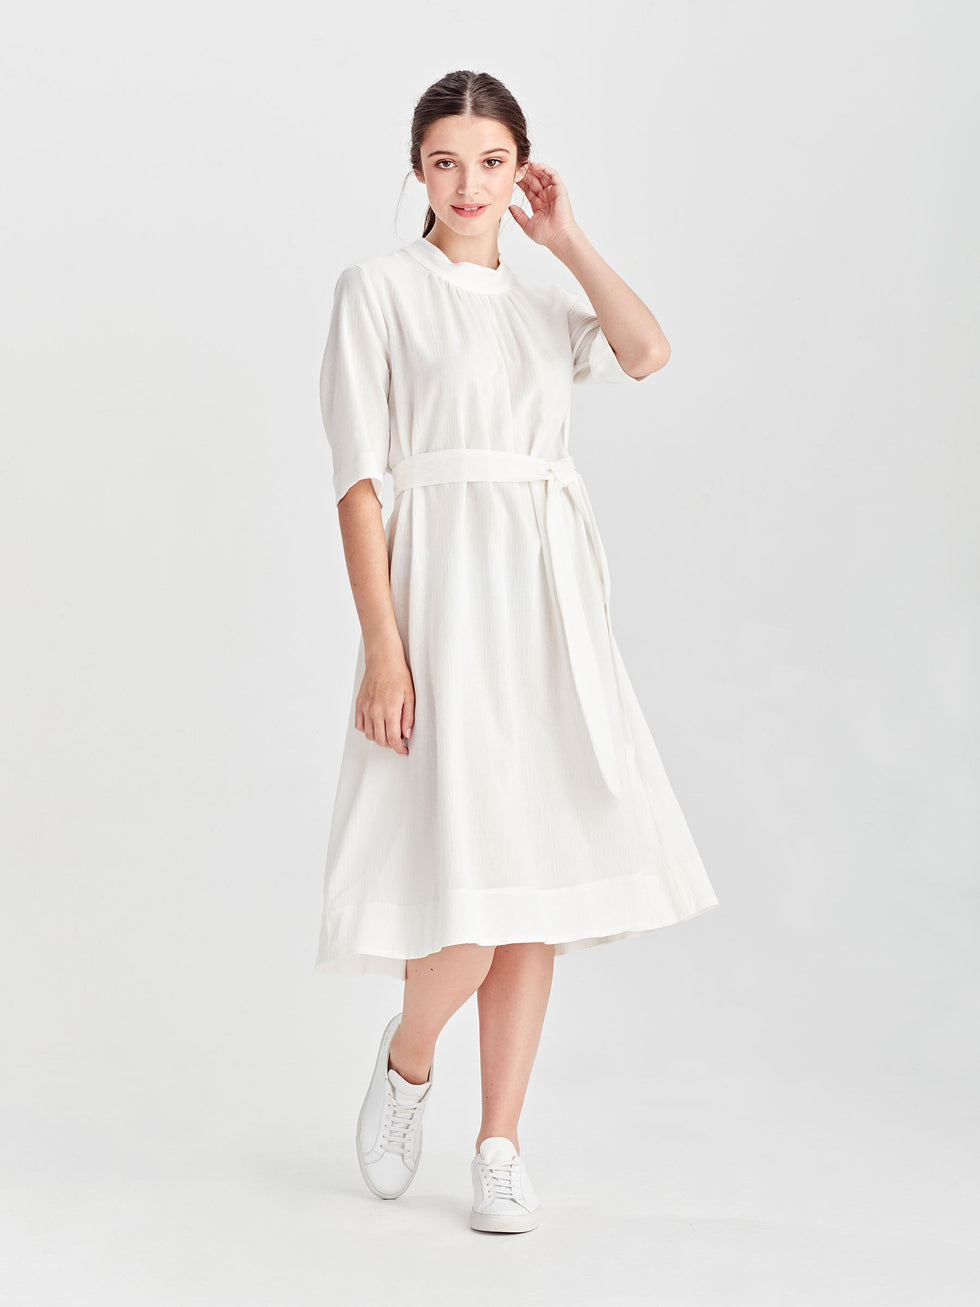 Alexa Dress (Cotton Linen) White